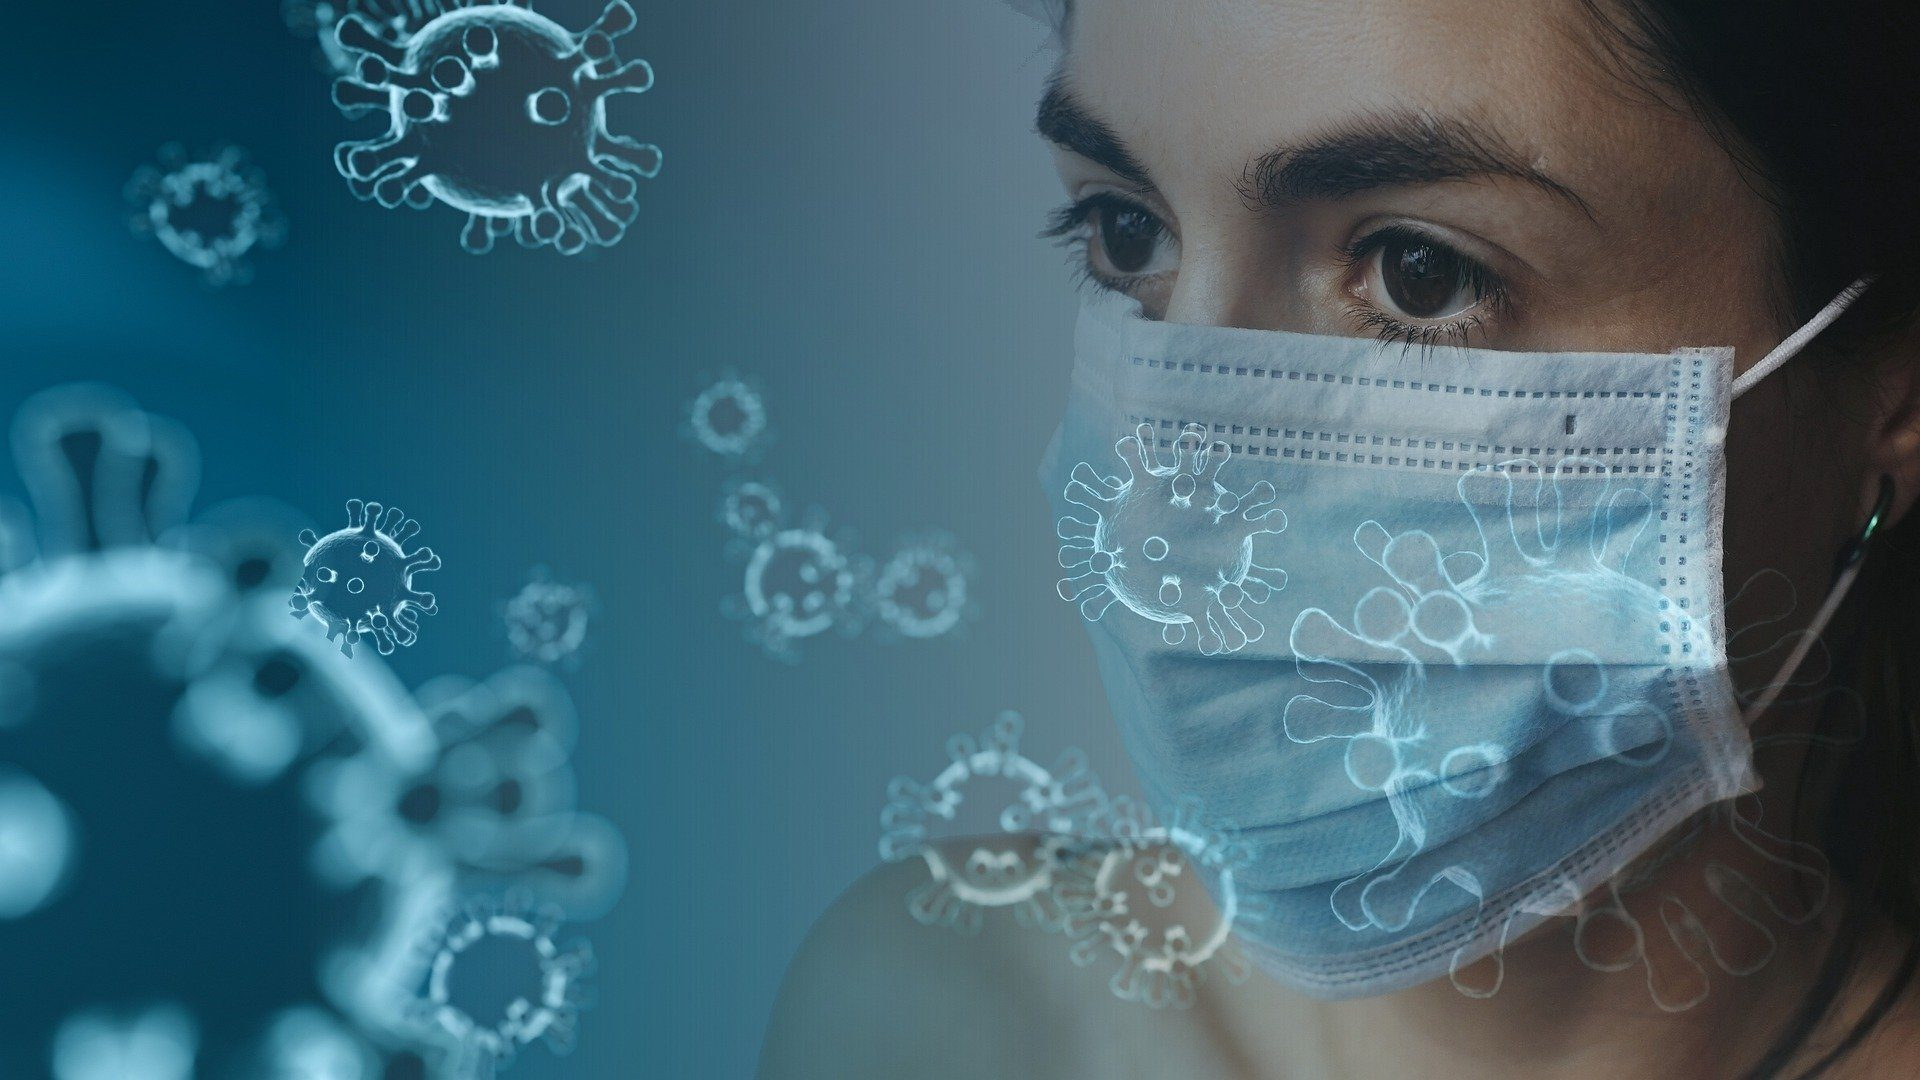 Coronavirus particles in the air and young woman wearing a medical mask